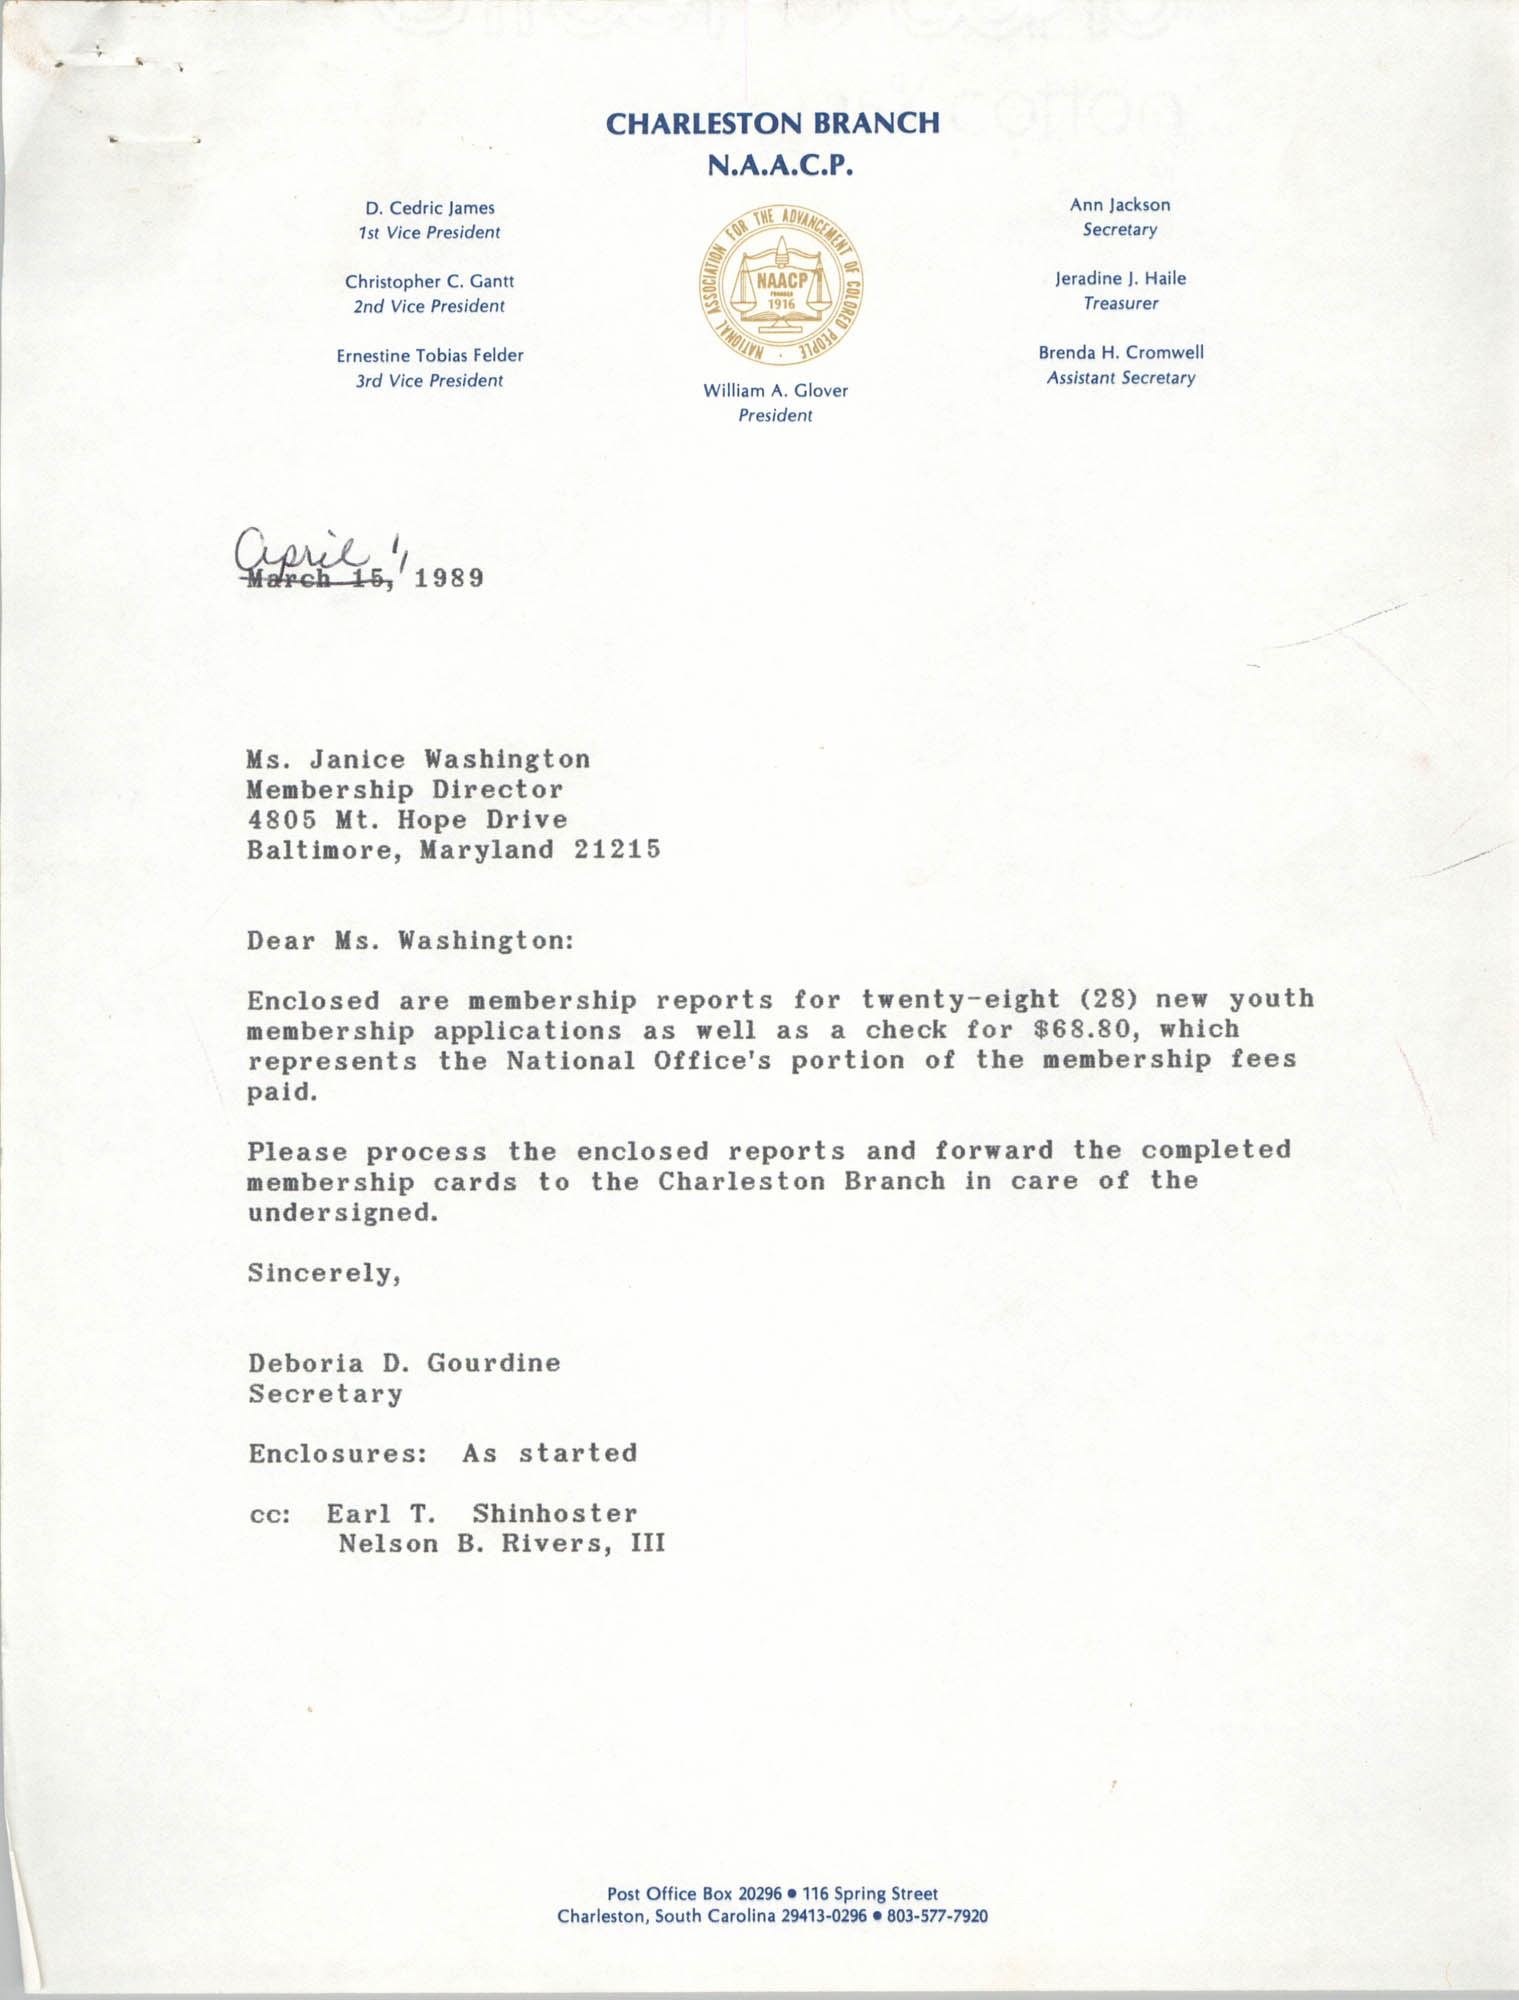 Letter from Deboria D. Gourdine to Janice Washington, NAACP, April 1, 1989